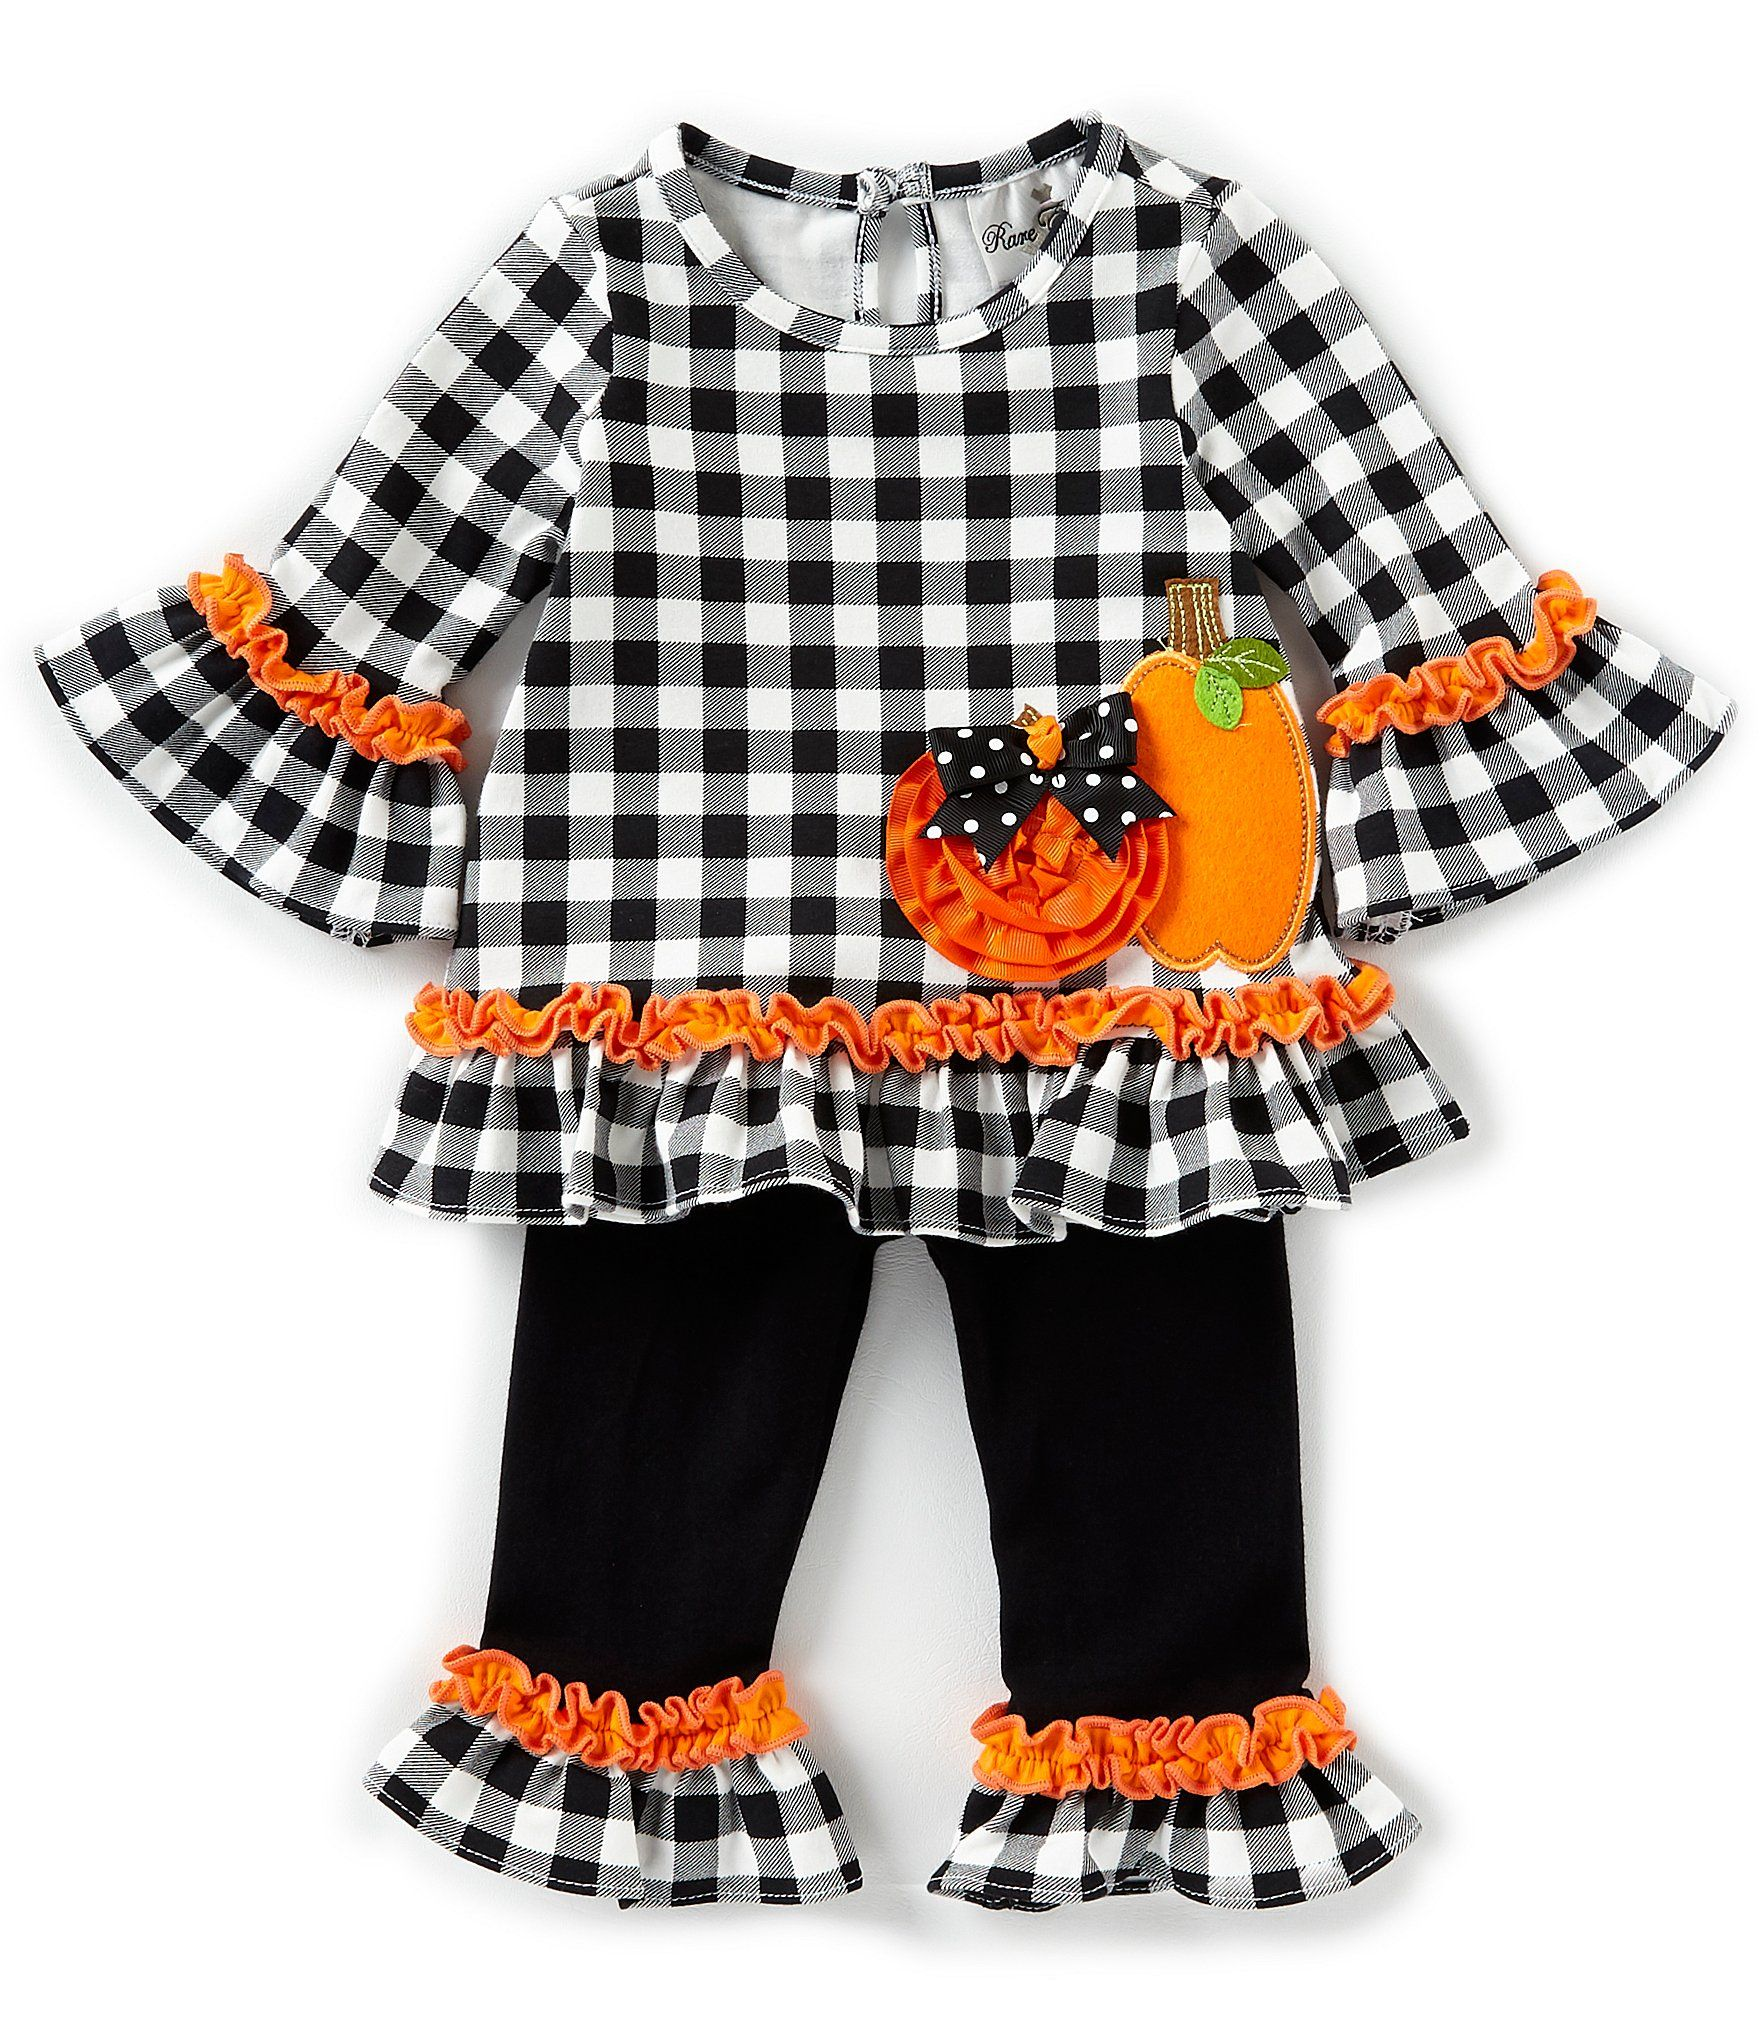 a2a8b337549a Shop for Rare Editions Baby Girls 3-24 Months Gingham Pumpkin Top & Legging  Set at Dillards.com. Visit Dillards.com to find clothing, accessories,  shoes, ...